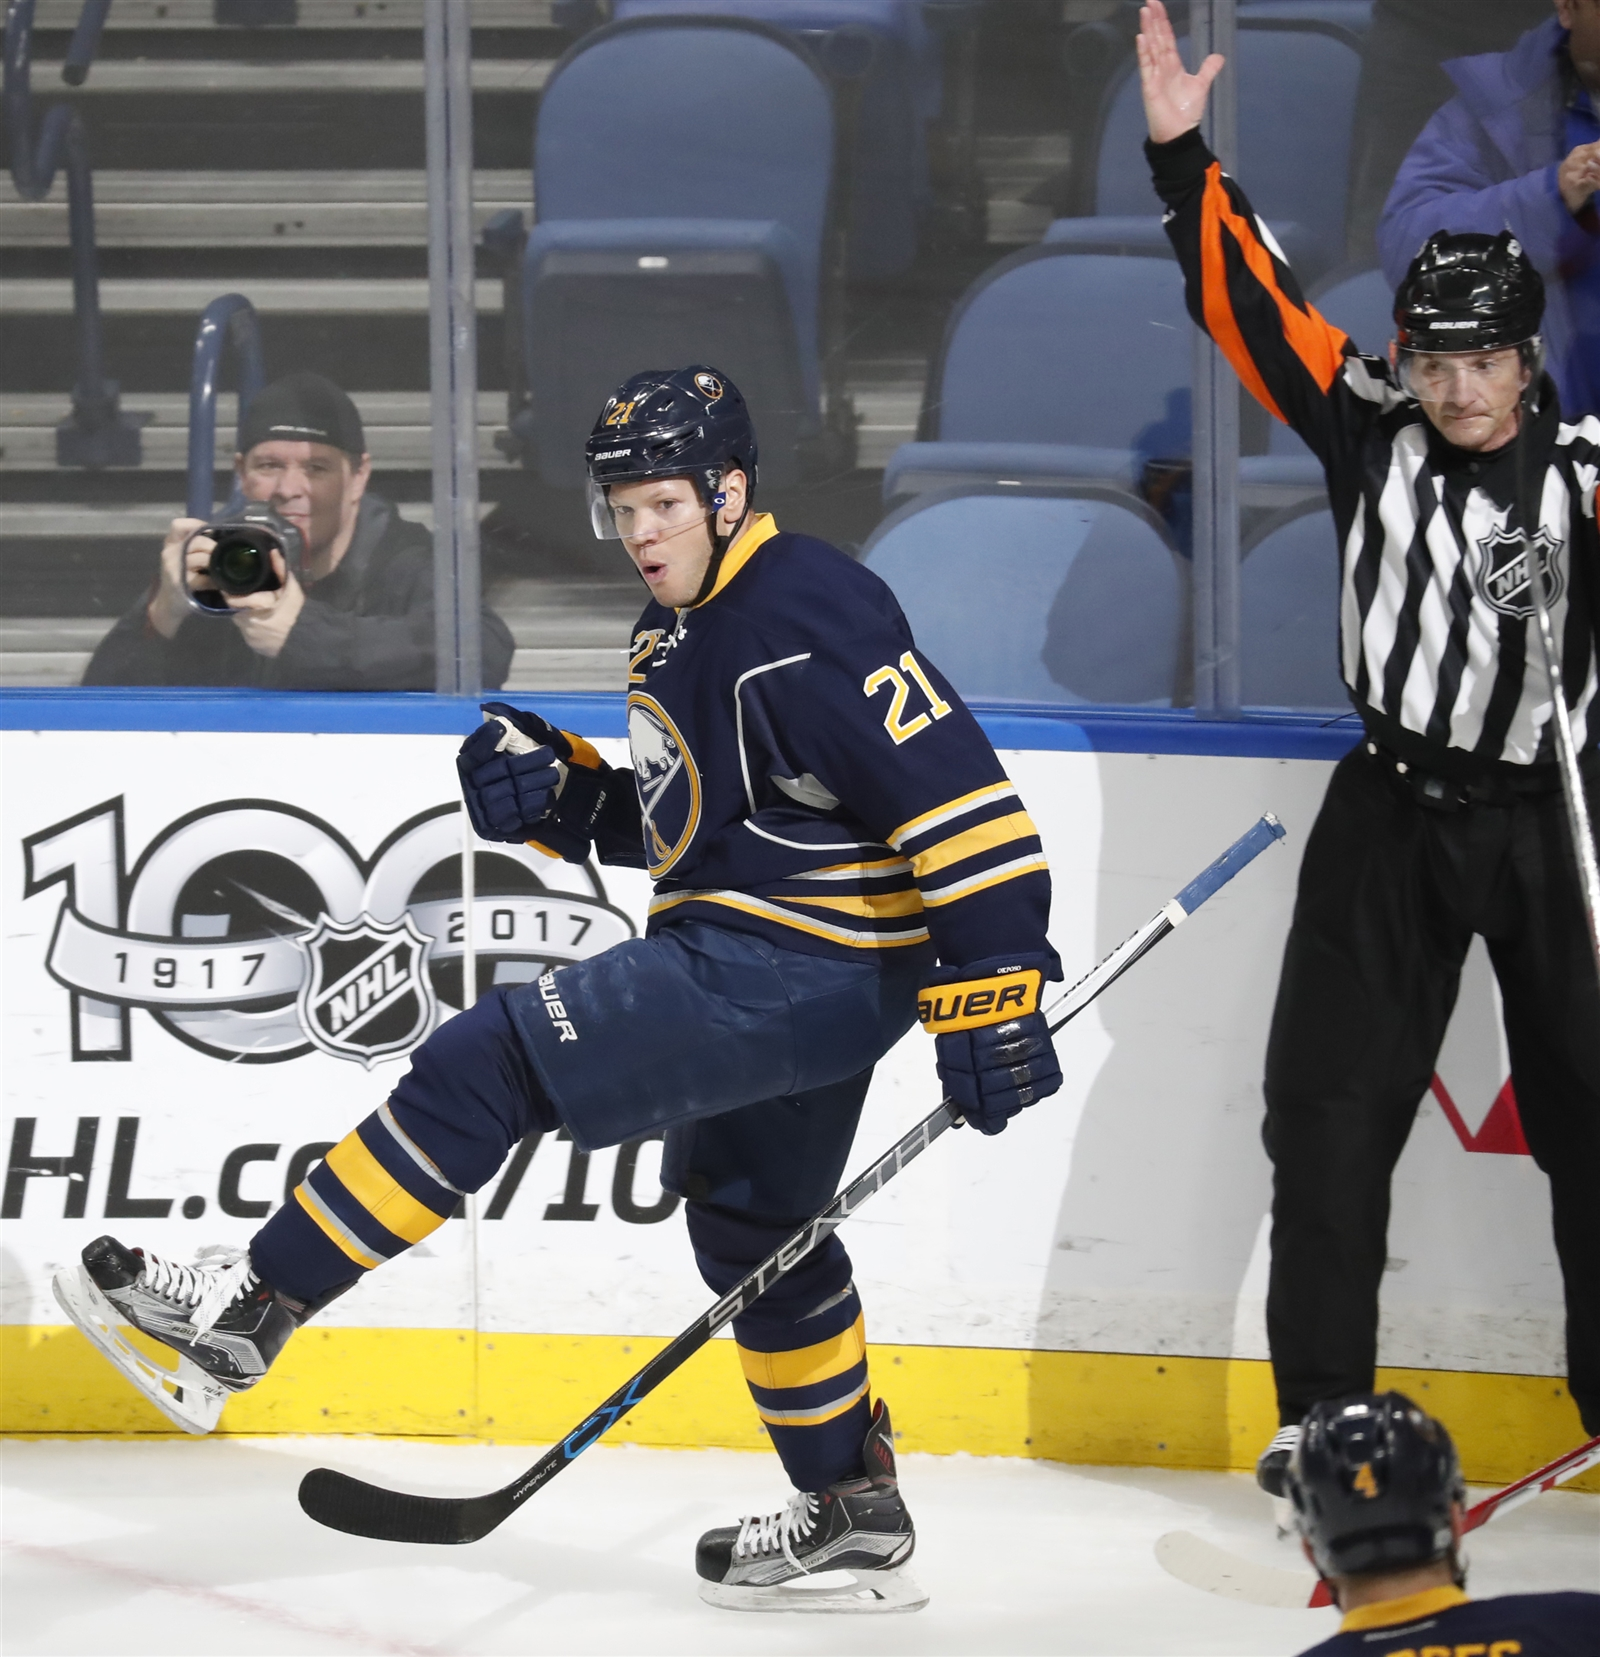 A rib injury could keep Kyle Okposo out of the Sabres' lineup for several weeks. (Harry Scull Jr./Buffalo News)